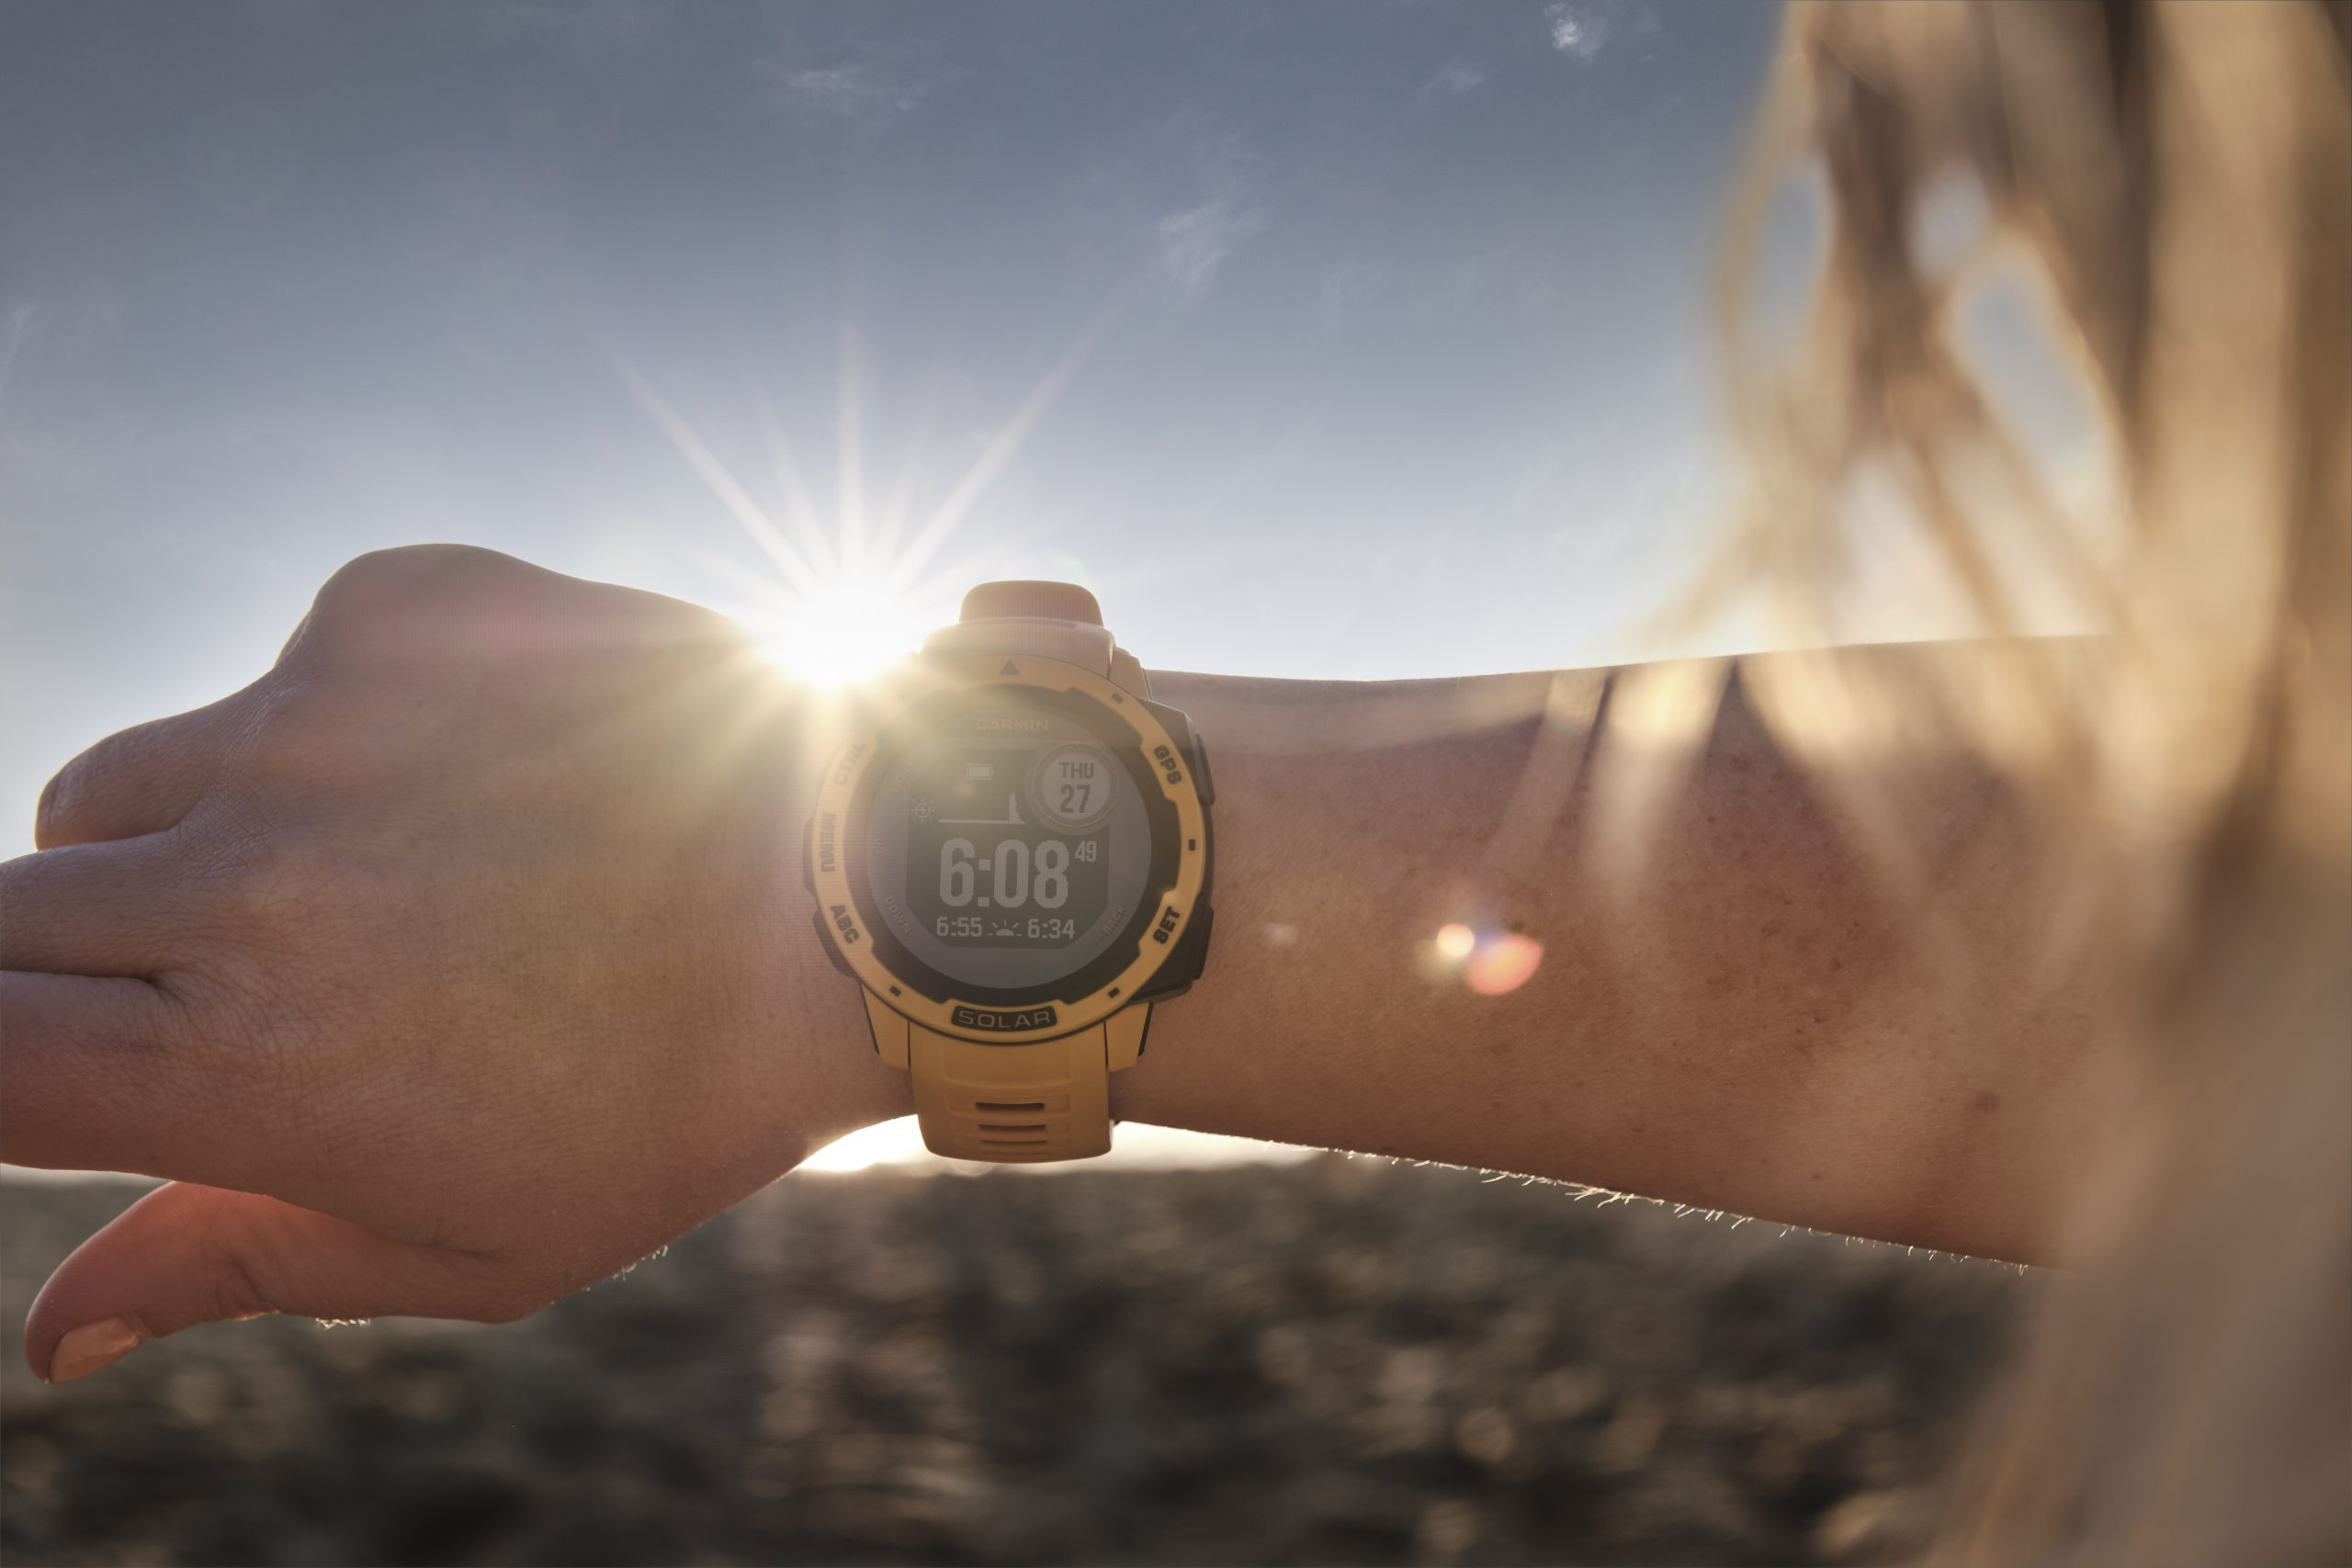 bikeradar.com - Paul Norman - Garmin claims new Solar smartwatches make recharging a thing of the past